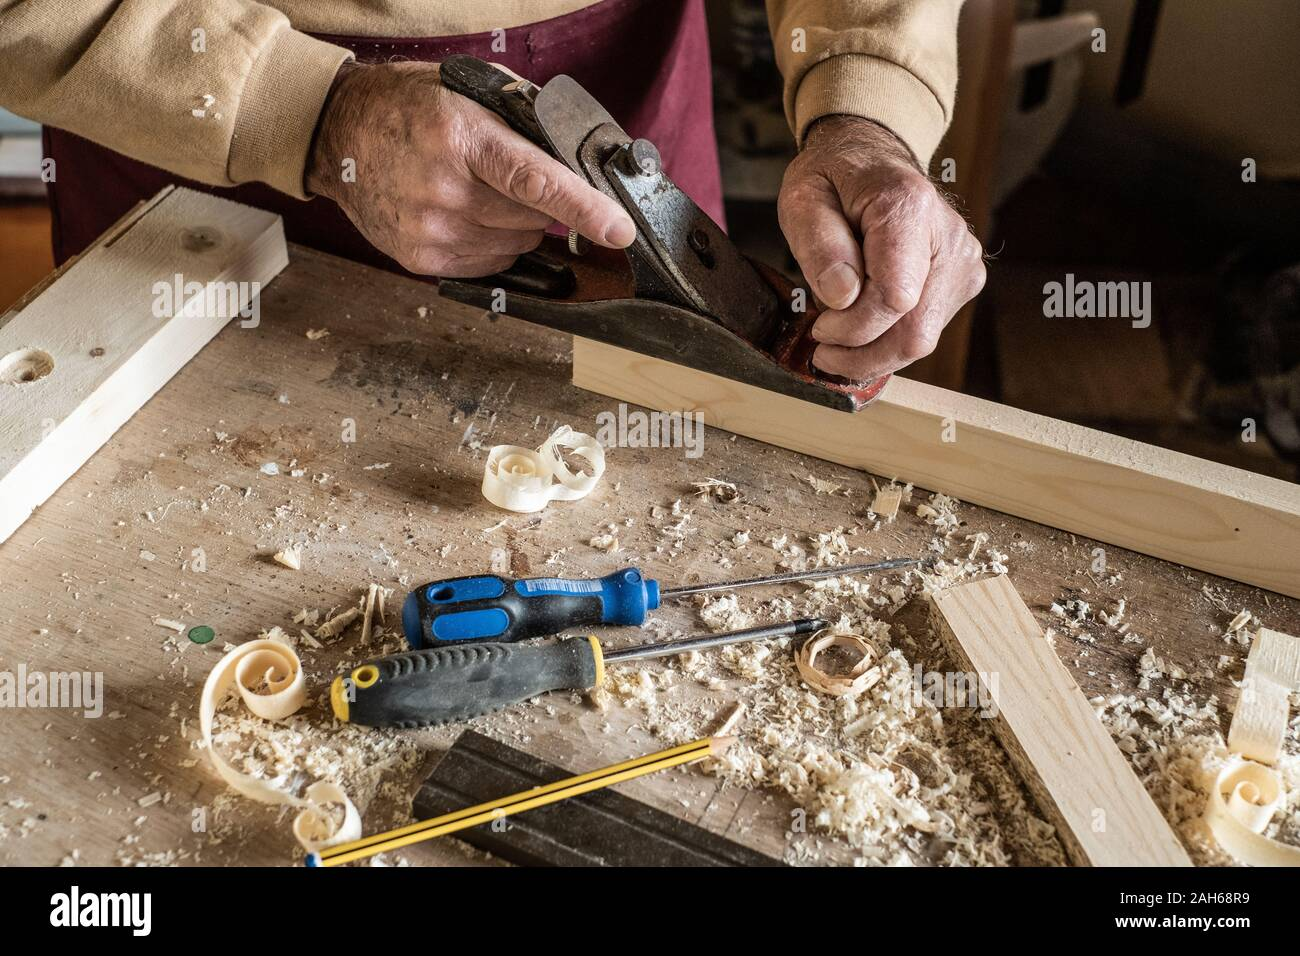 Carpenter man scraping curled wood scraps with hand plane tool and wooden plank. Stock Photo